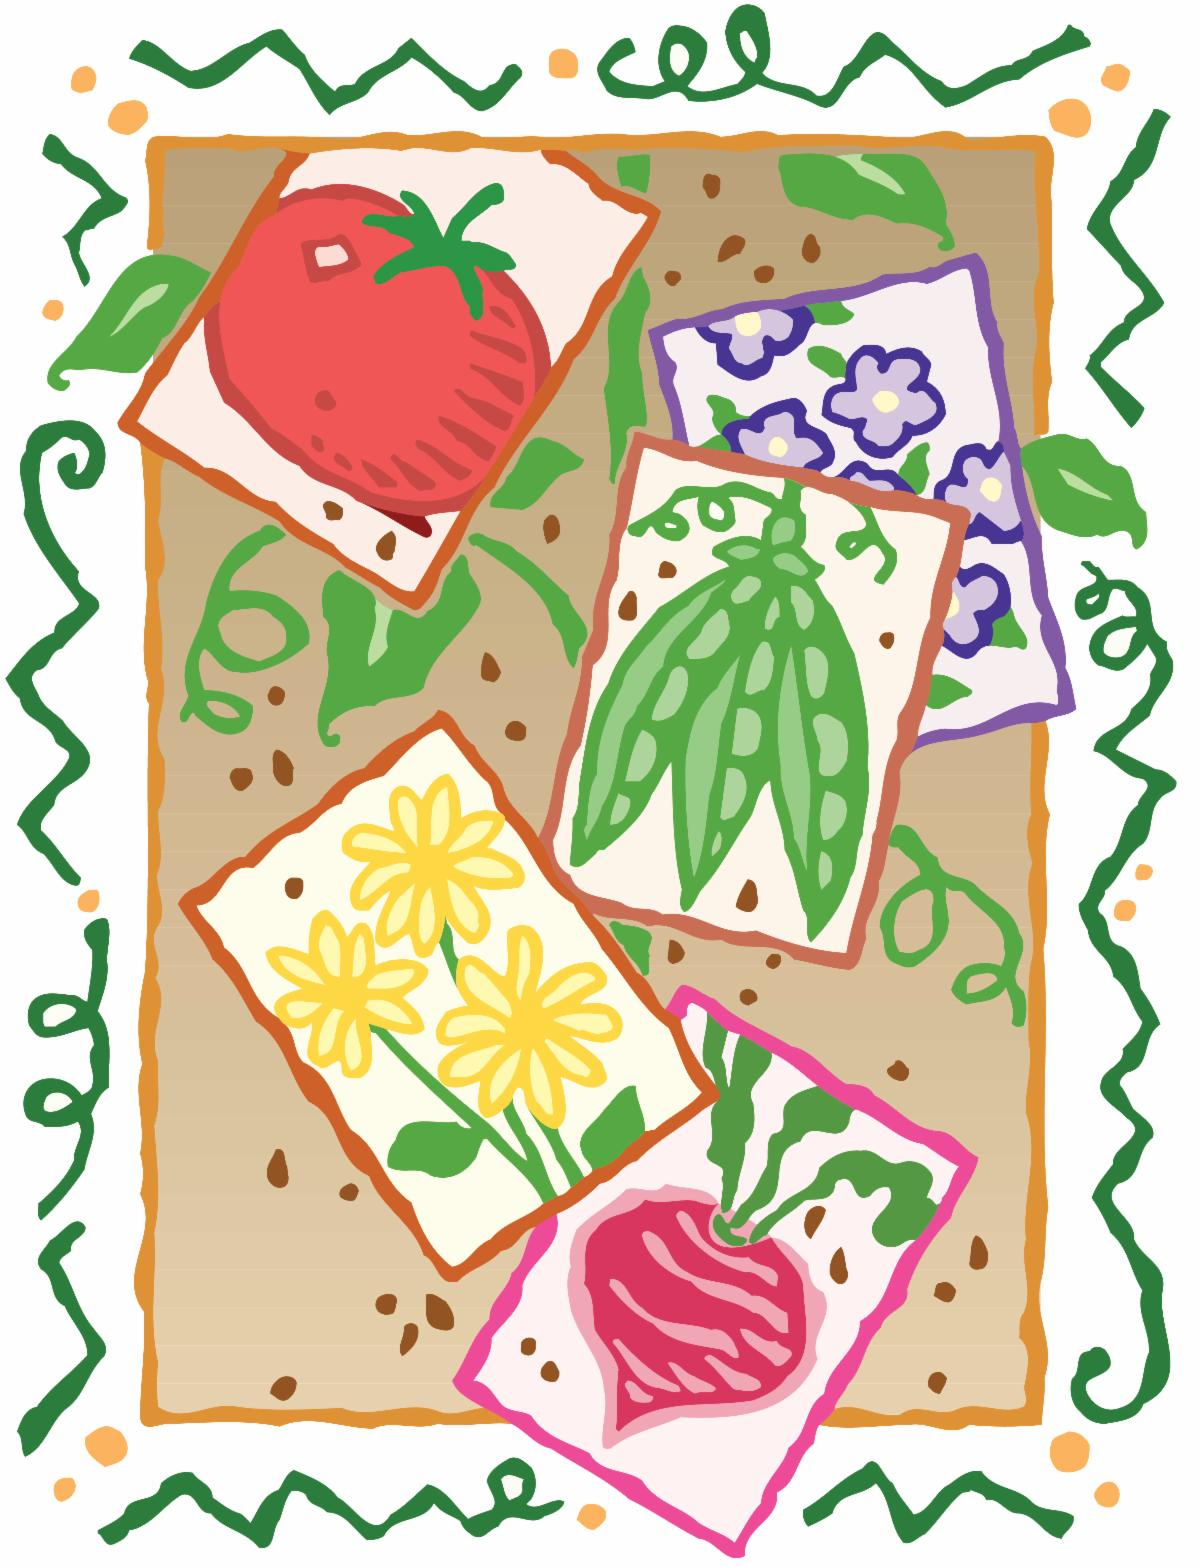 Illustration of various vegetable and flower seed packets